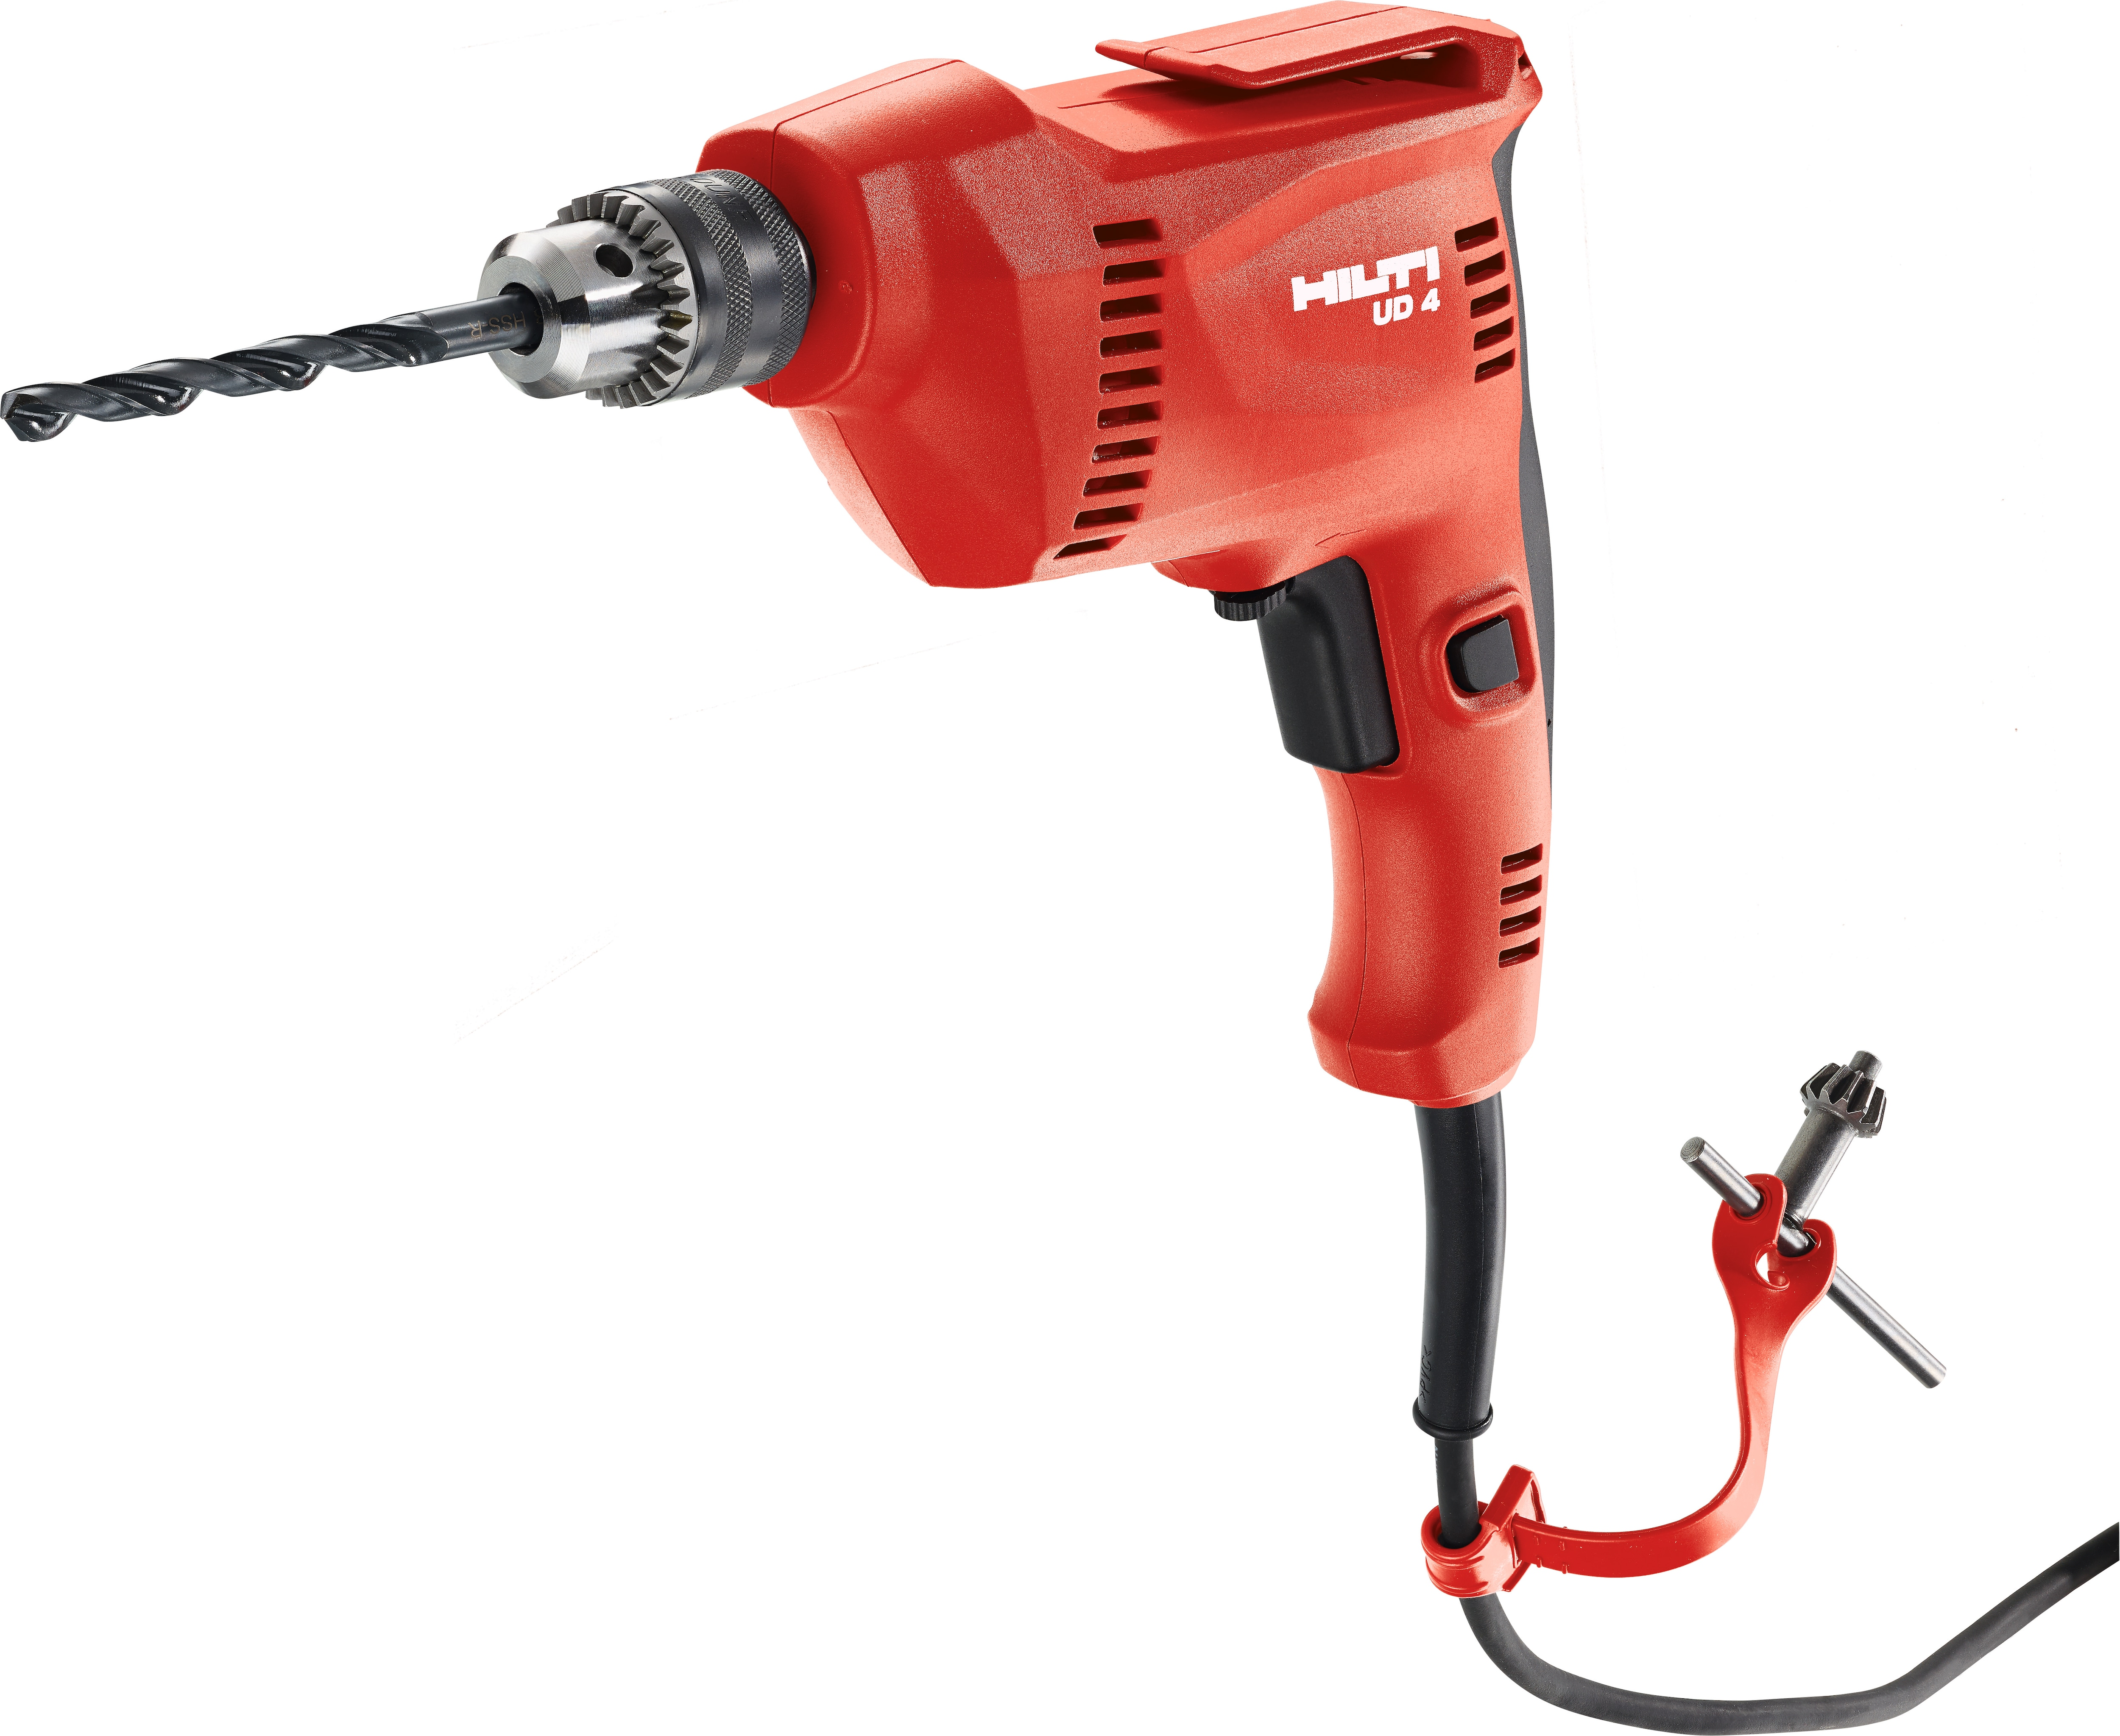 UD 4 Corded Drill driver